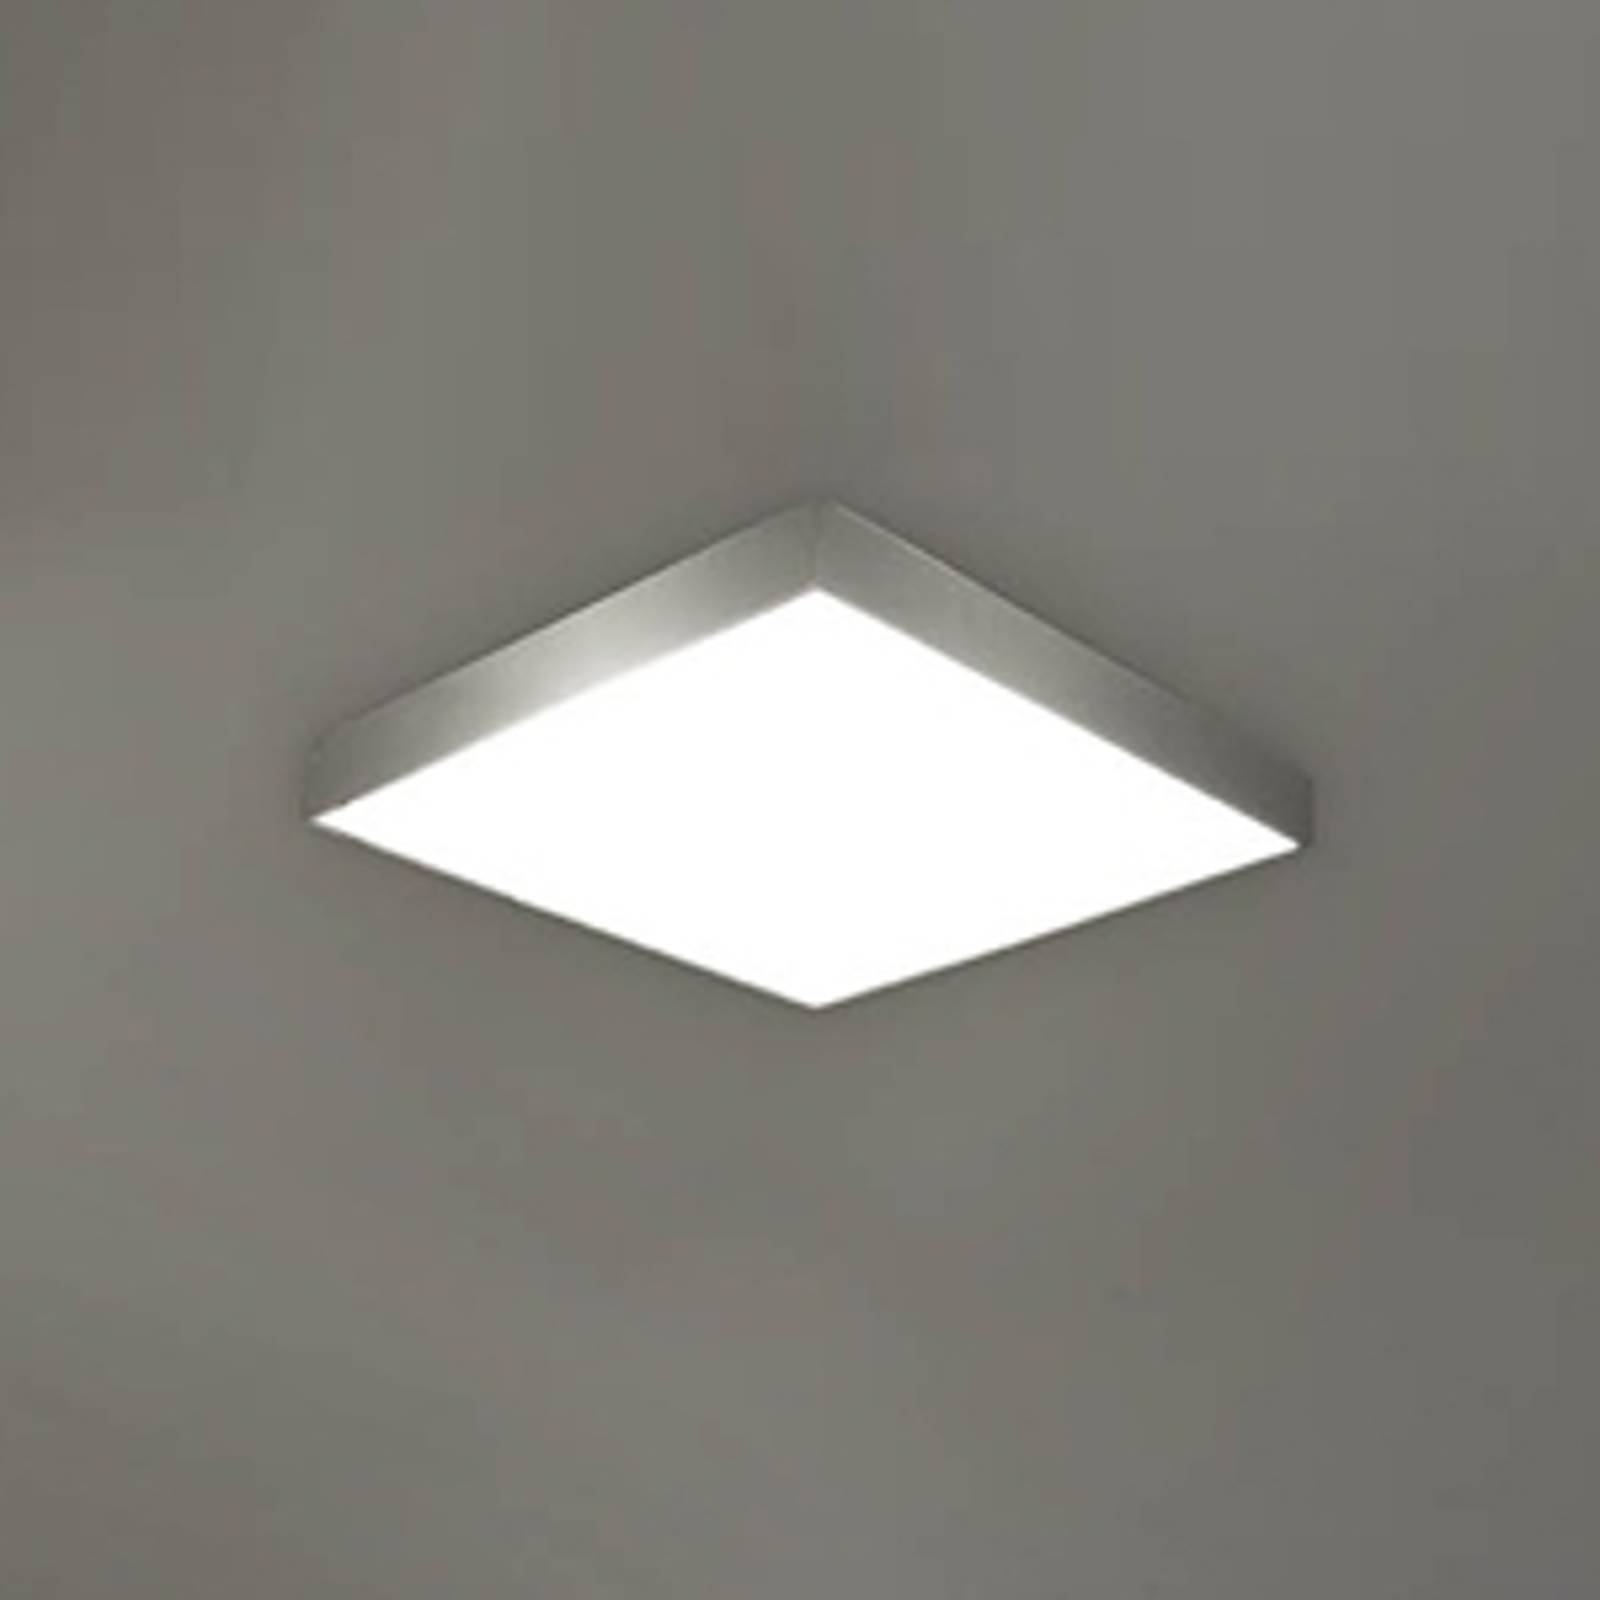 Apolo bathroom ceiling lamp IP44, 35 cm nickel from Pujol